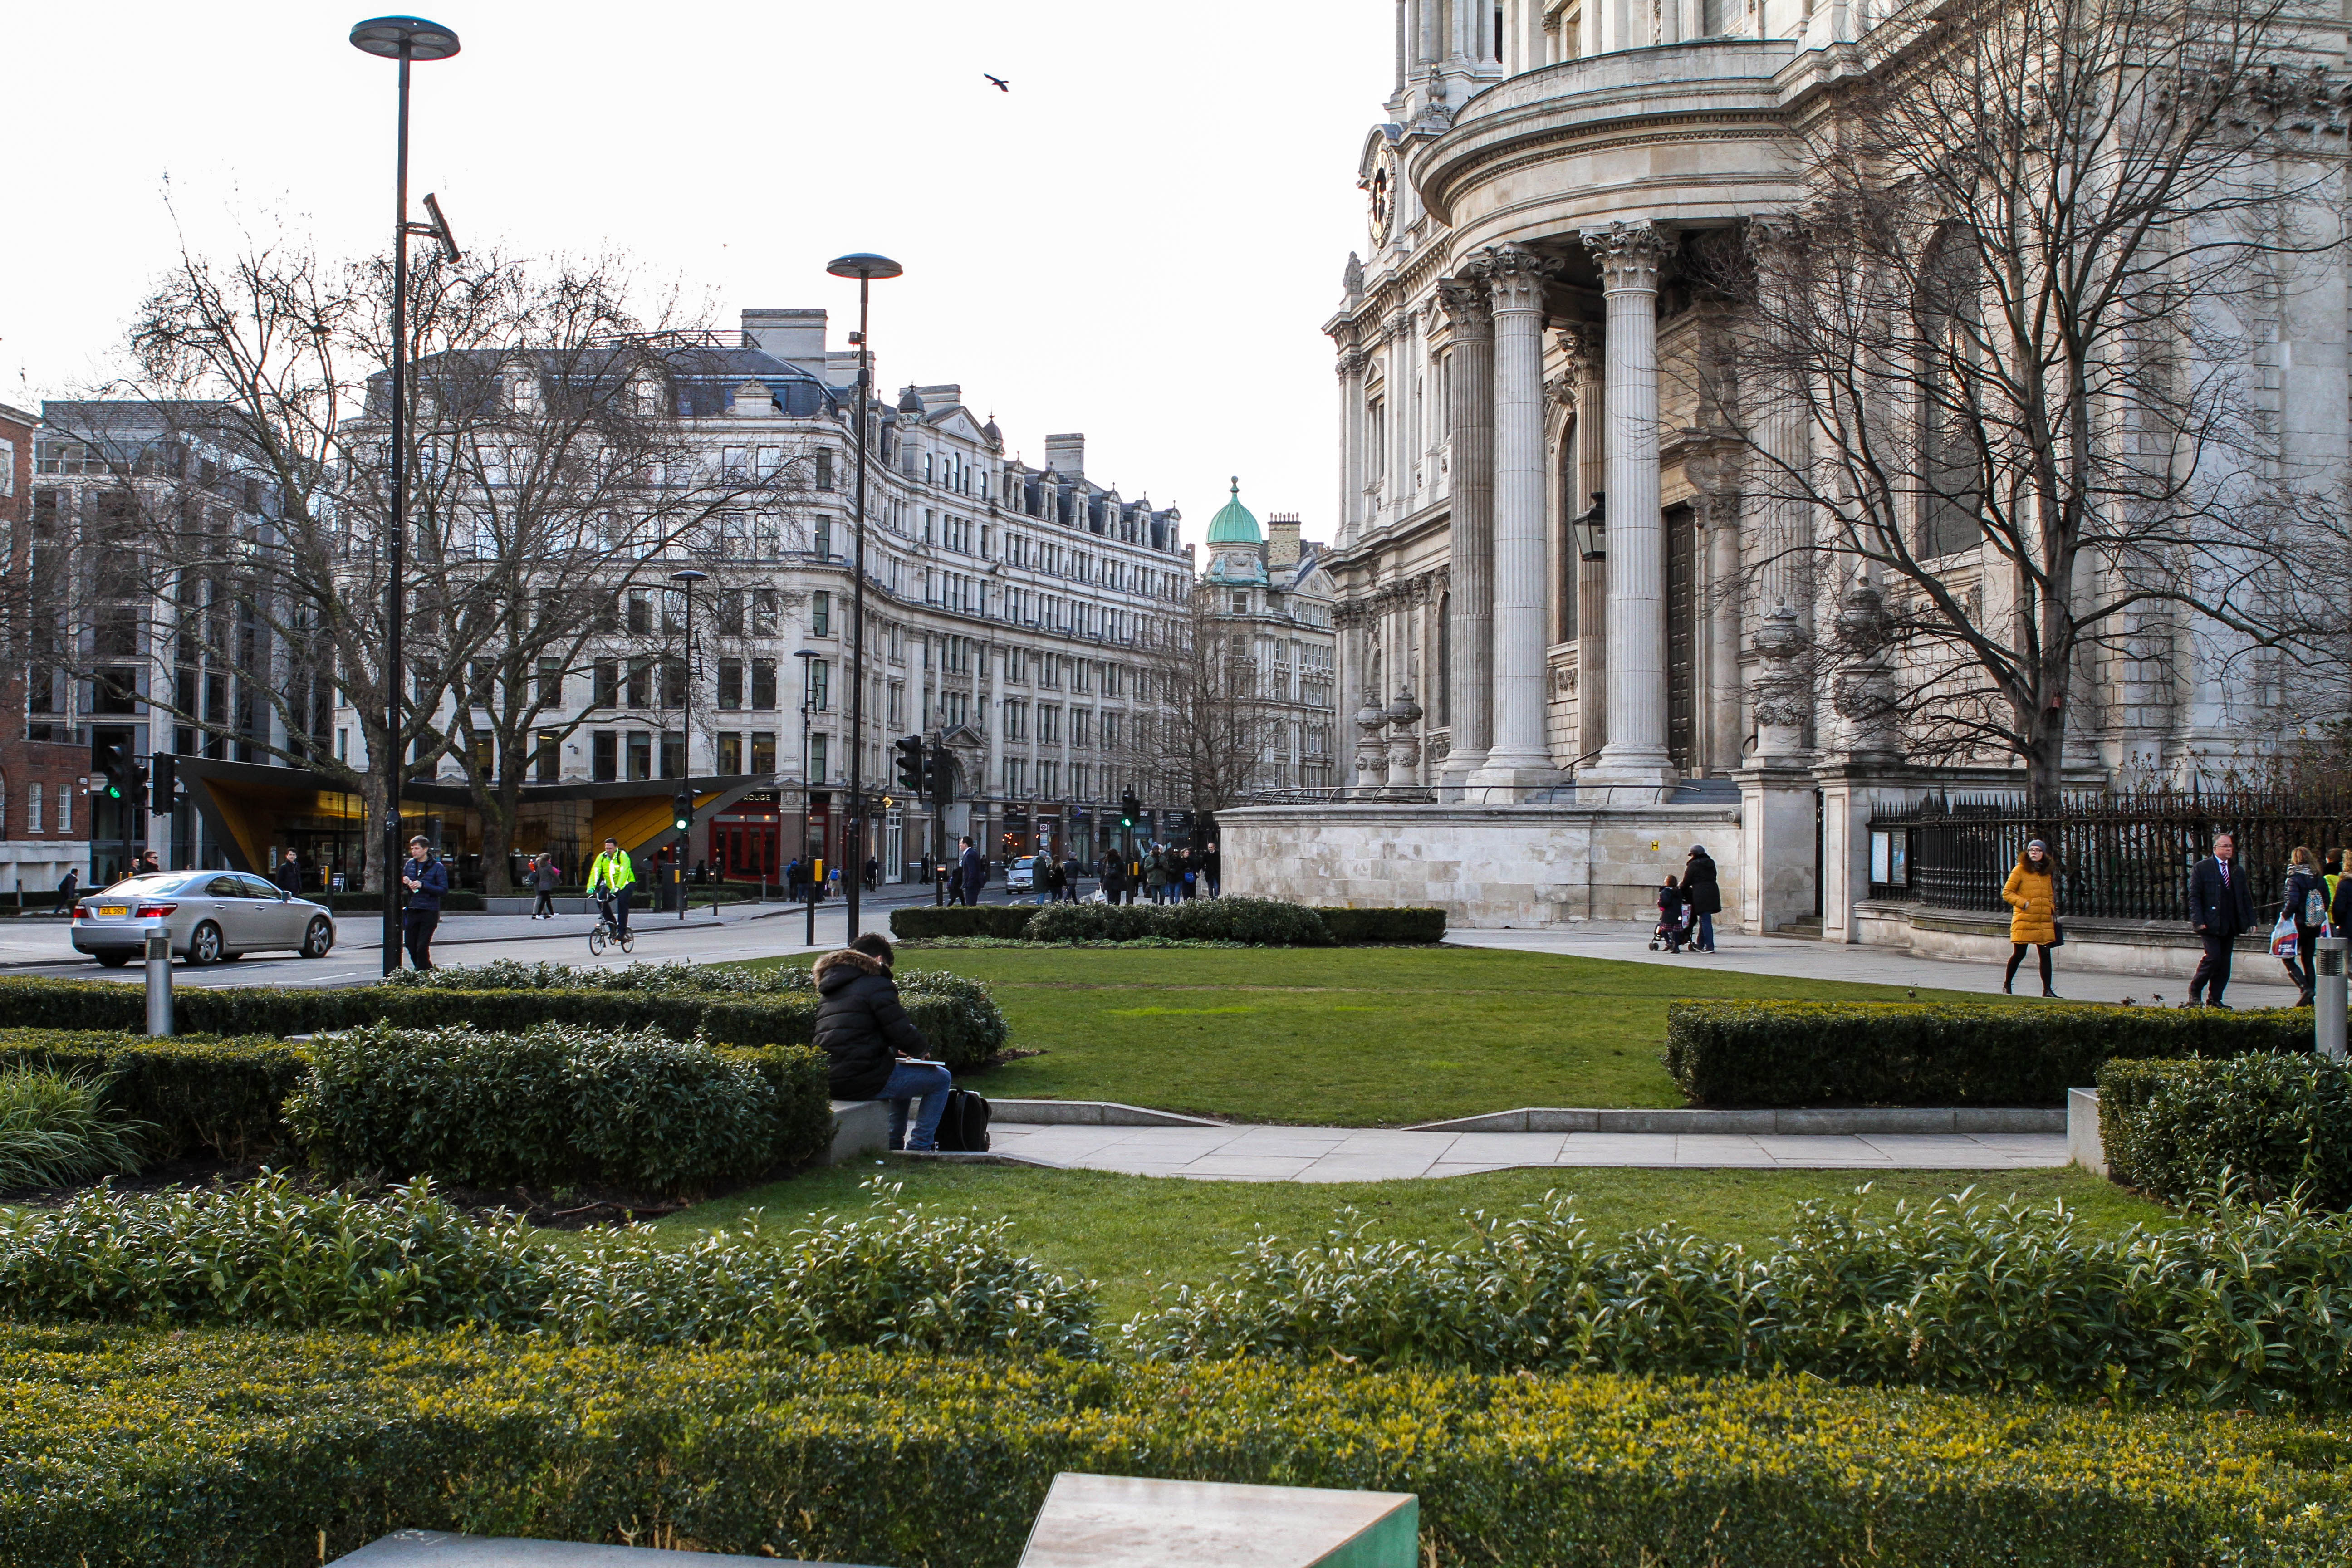 Yard in front of St. Paul's Cathedral